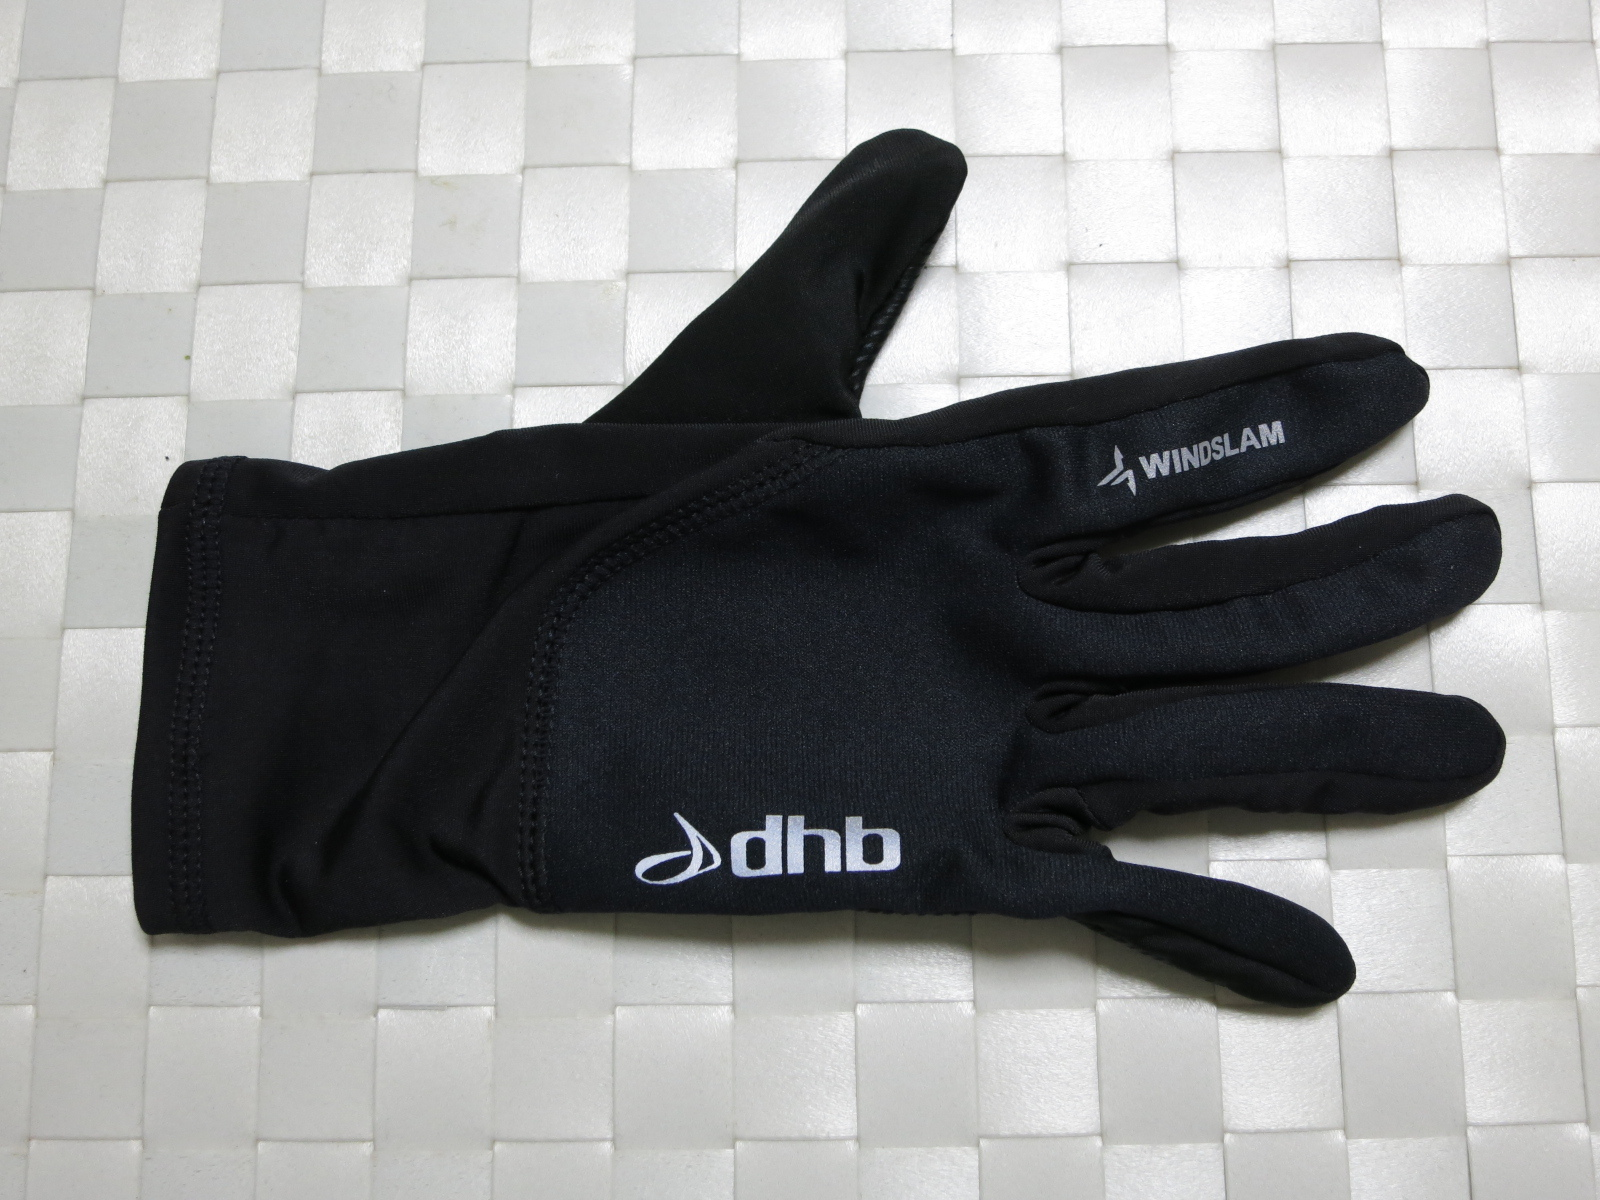 dhb_Windslam_Stretch_Glove_03.jpg